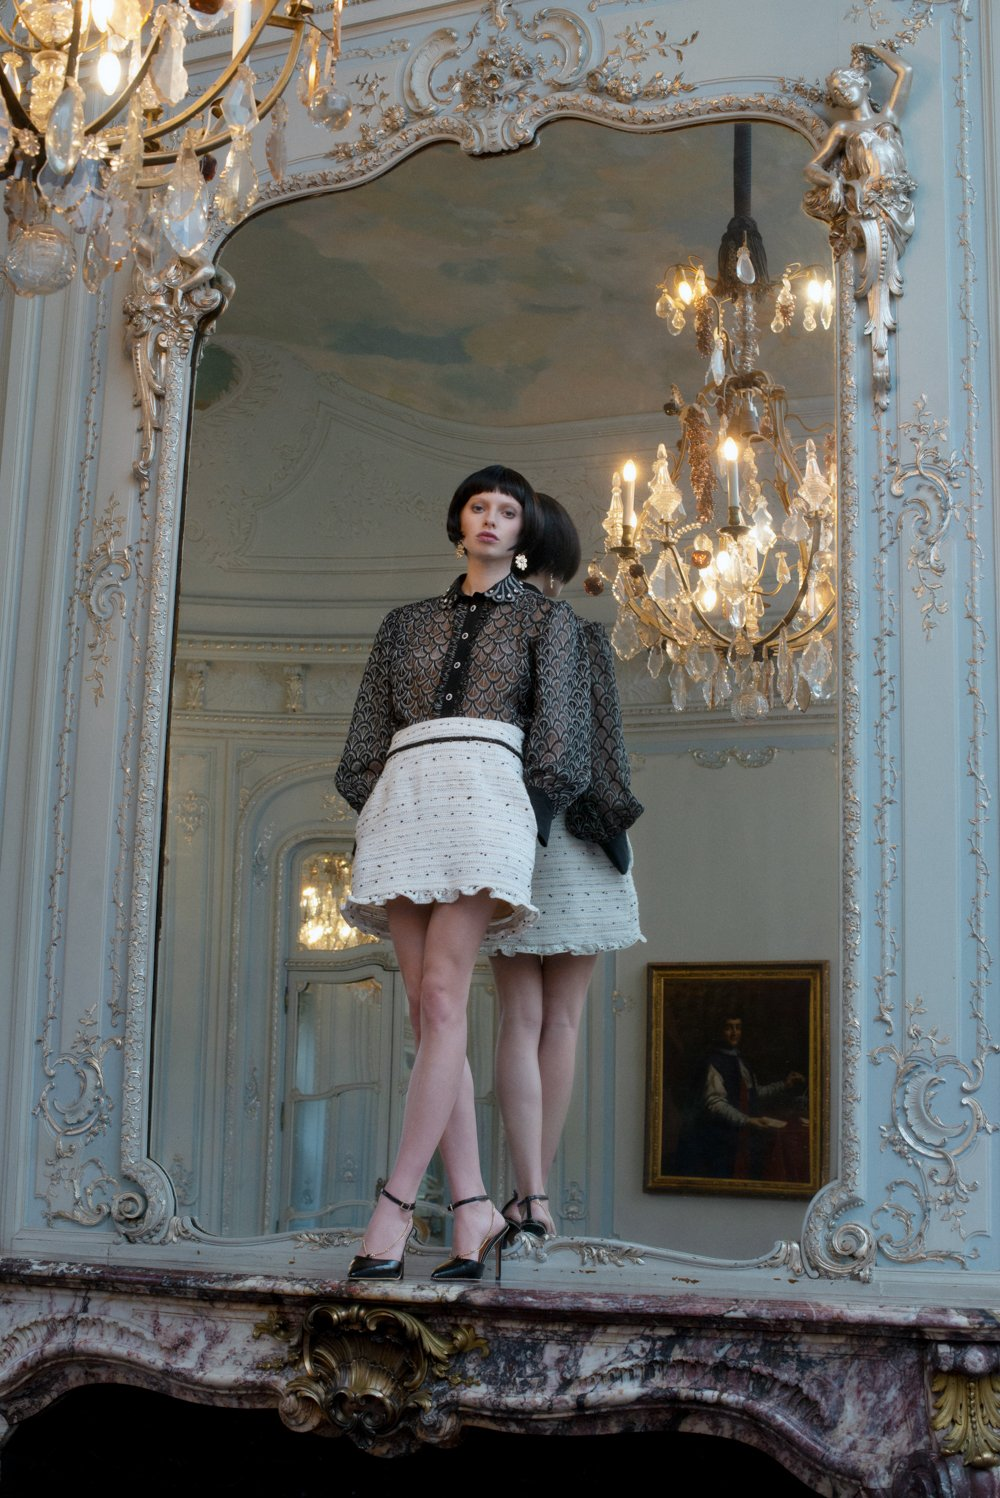 dream sister jane dress chanel style black and white suit